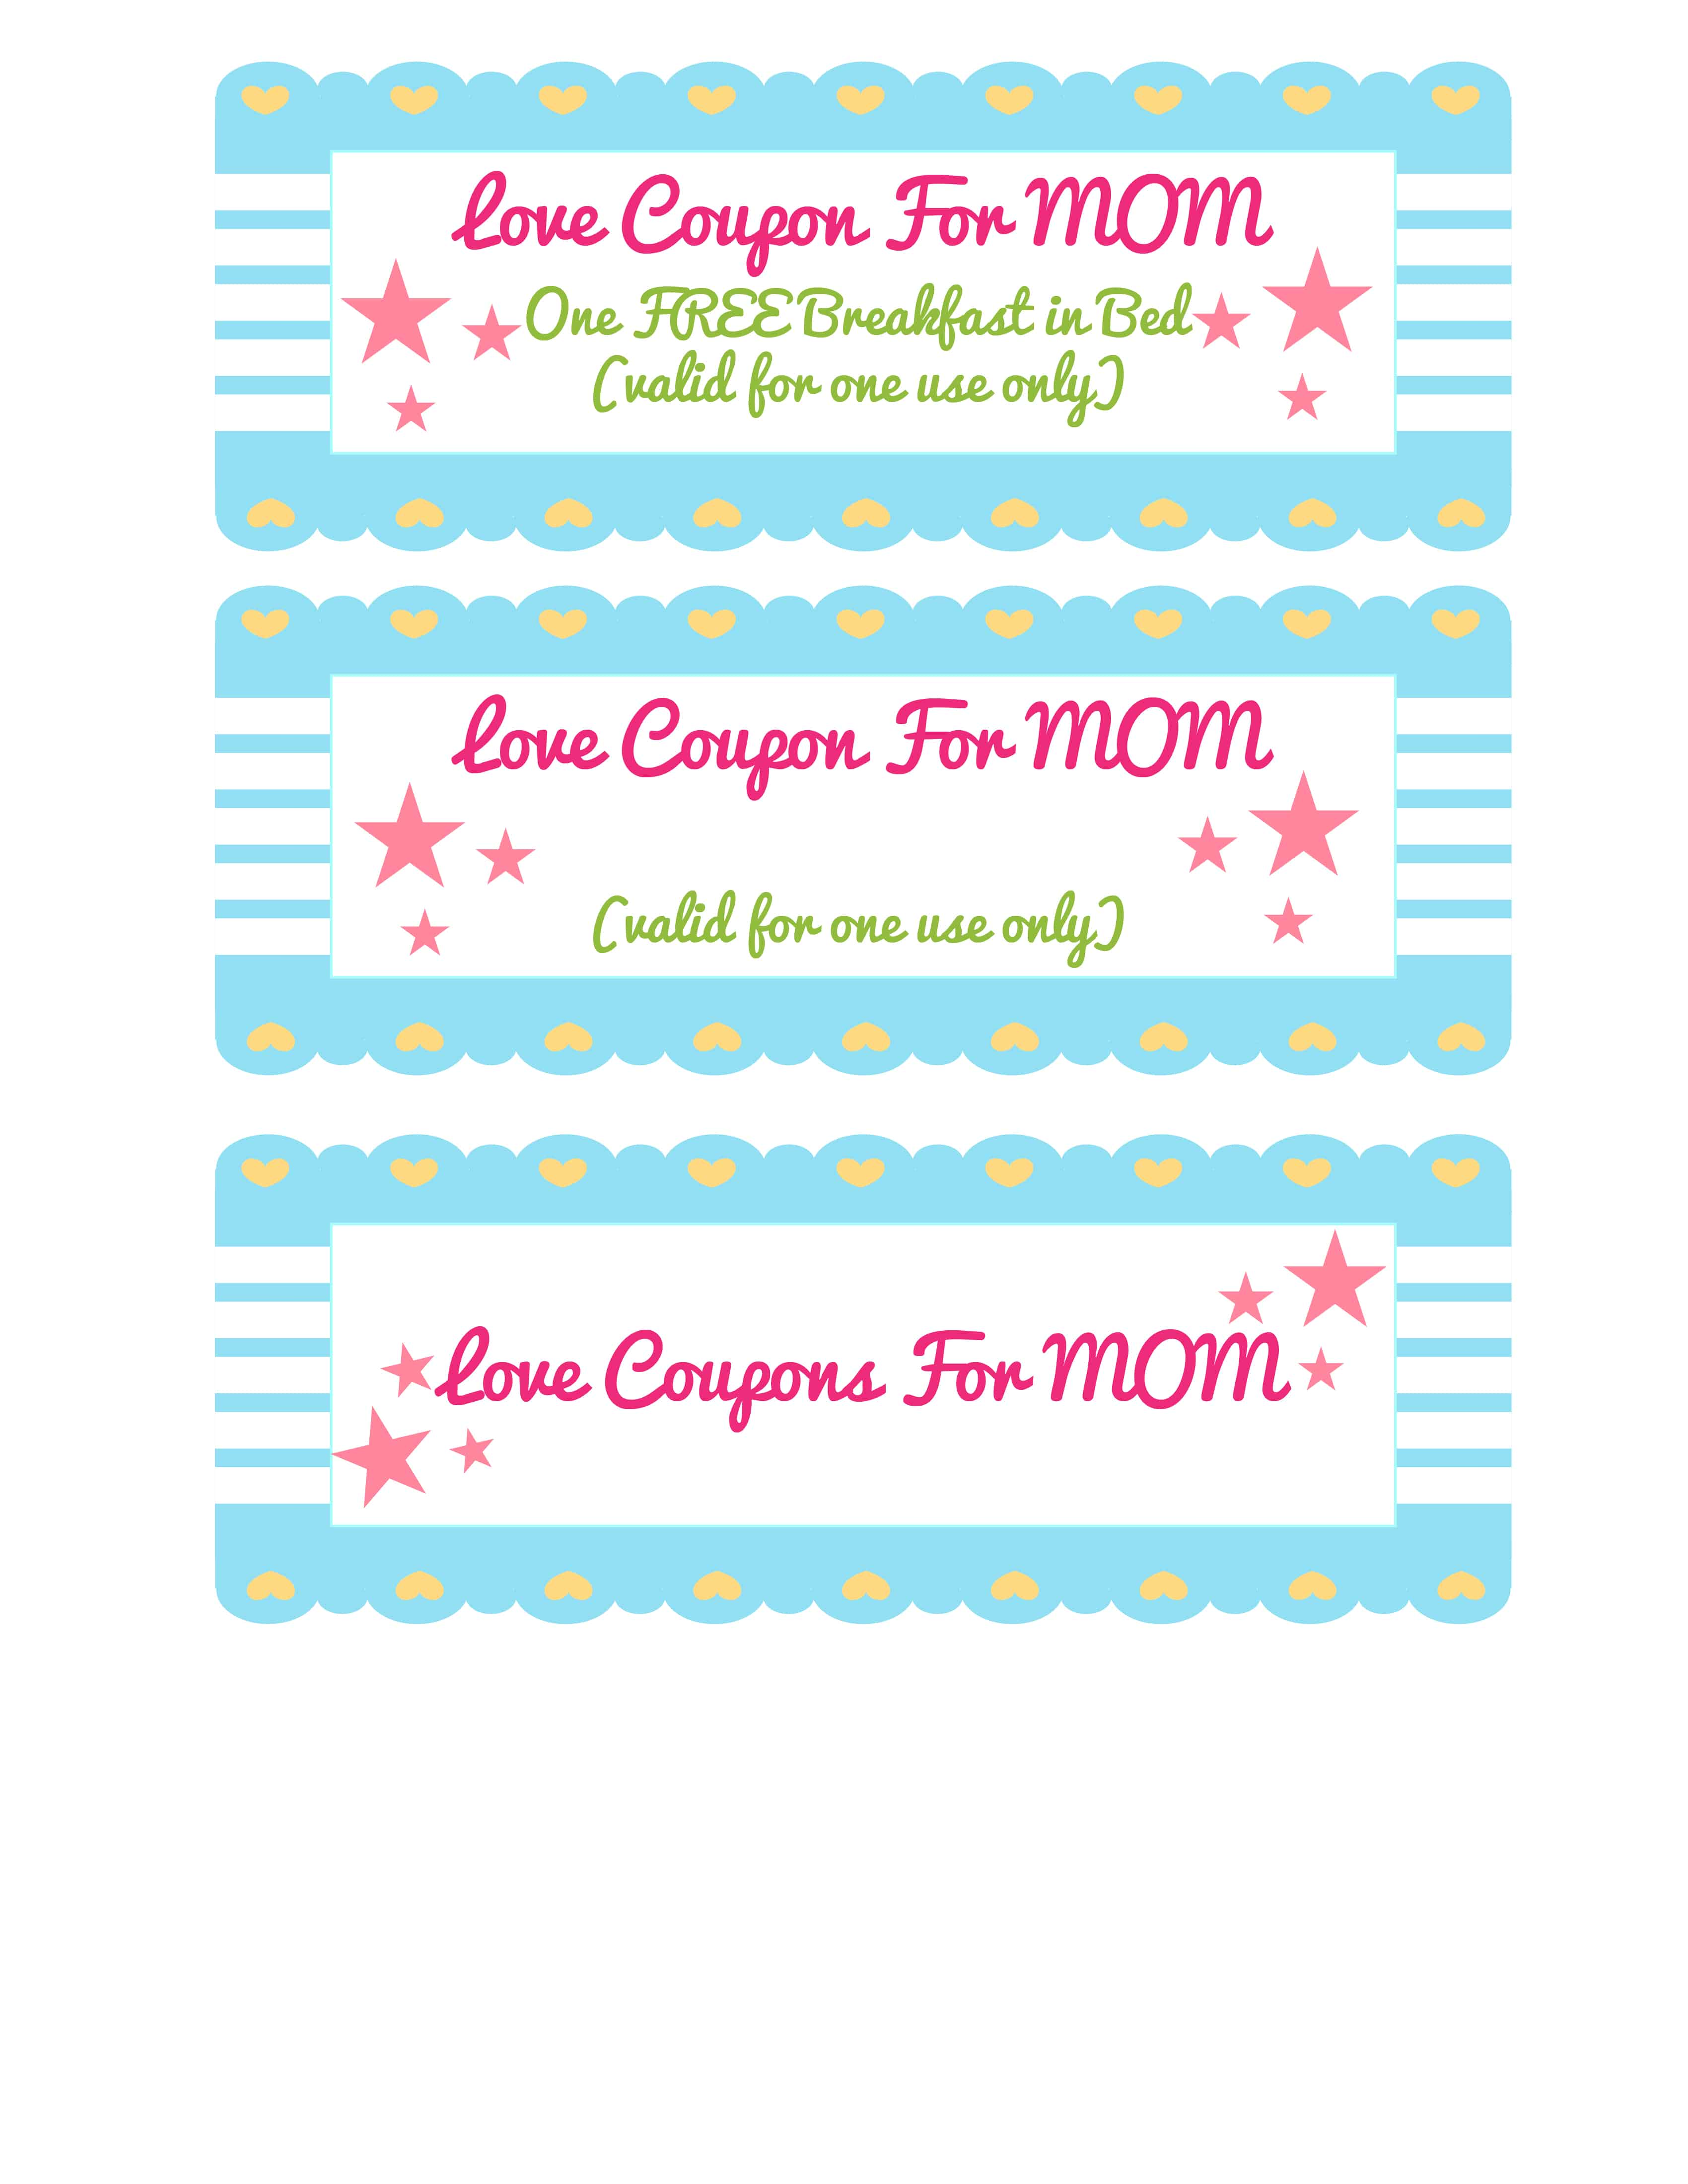 Use this homemade coupon ideas for mom template to create coupons for anything your mom would enjoy, like a DIY mani-pedi!